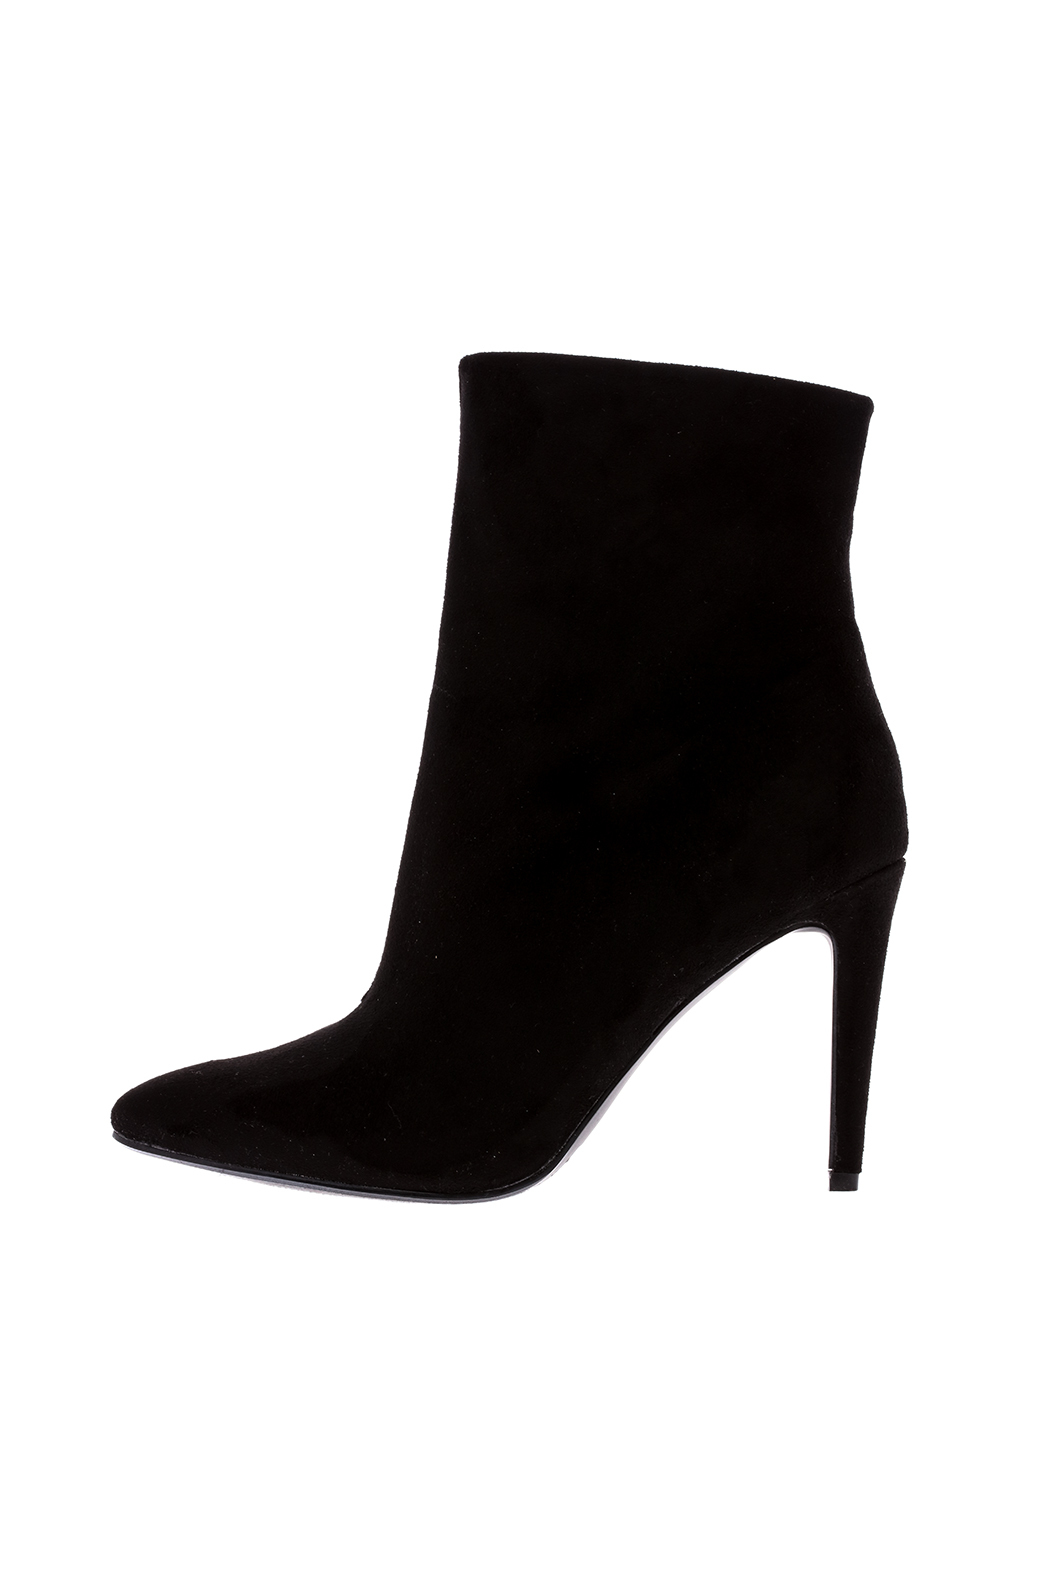 53b586d11ff Chinese Laundry Songbird Faux Suede Booties from North Shore by ...